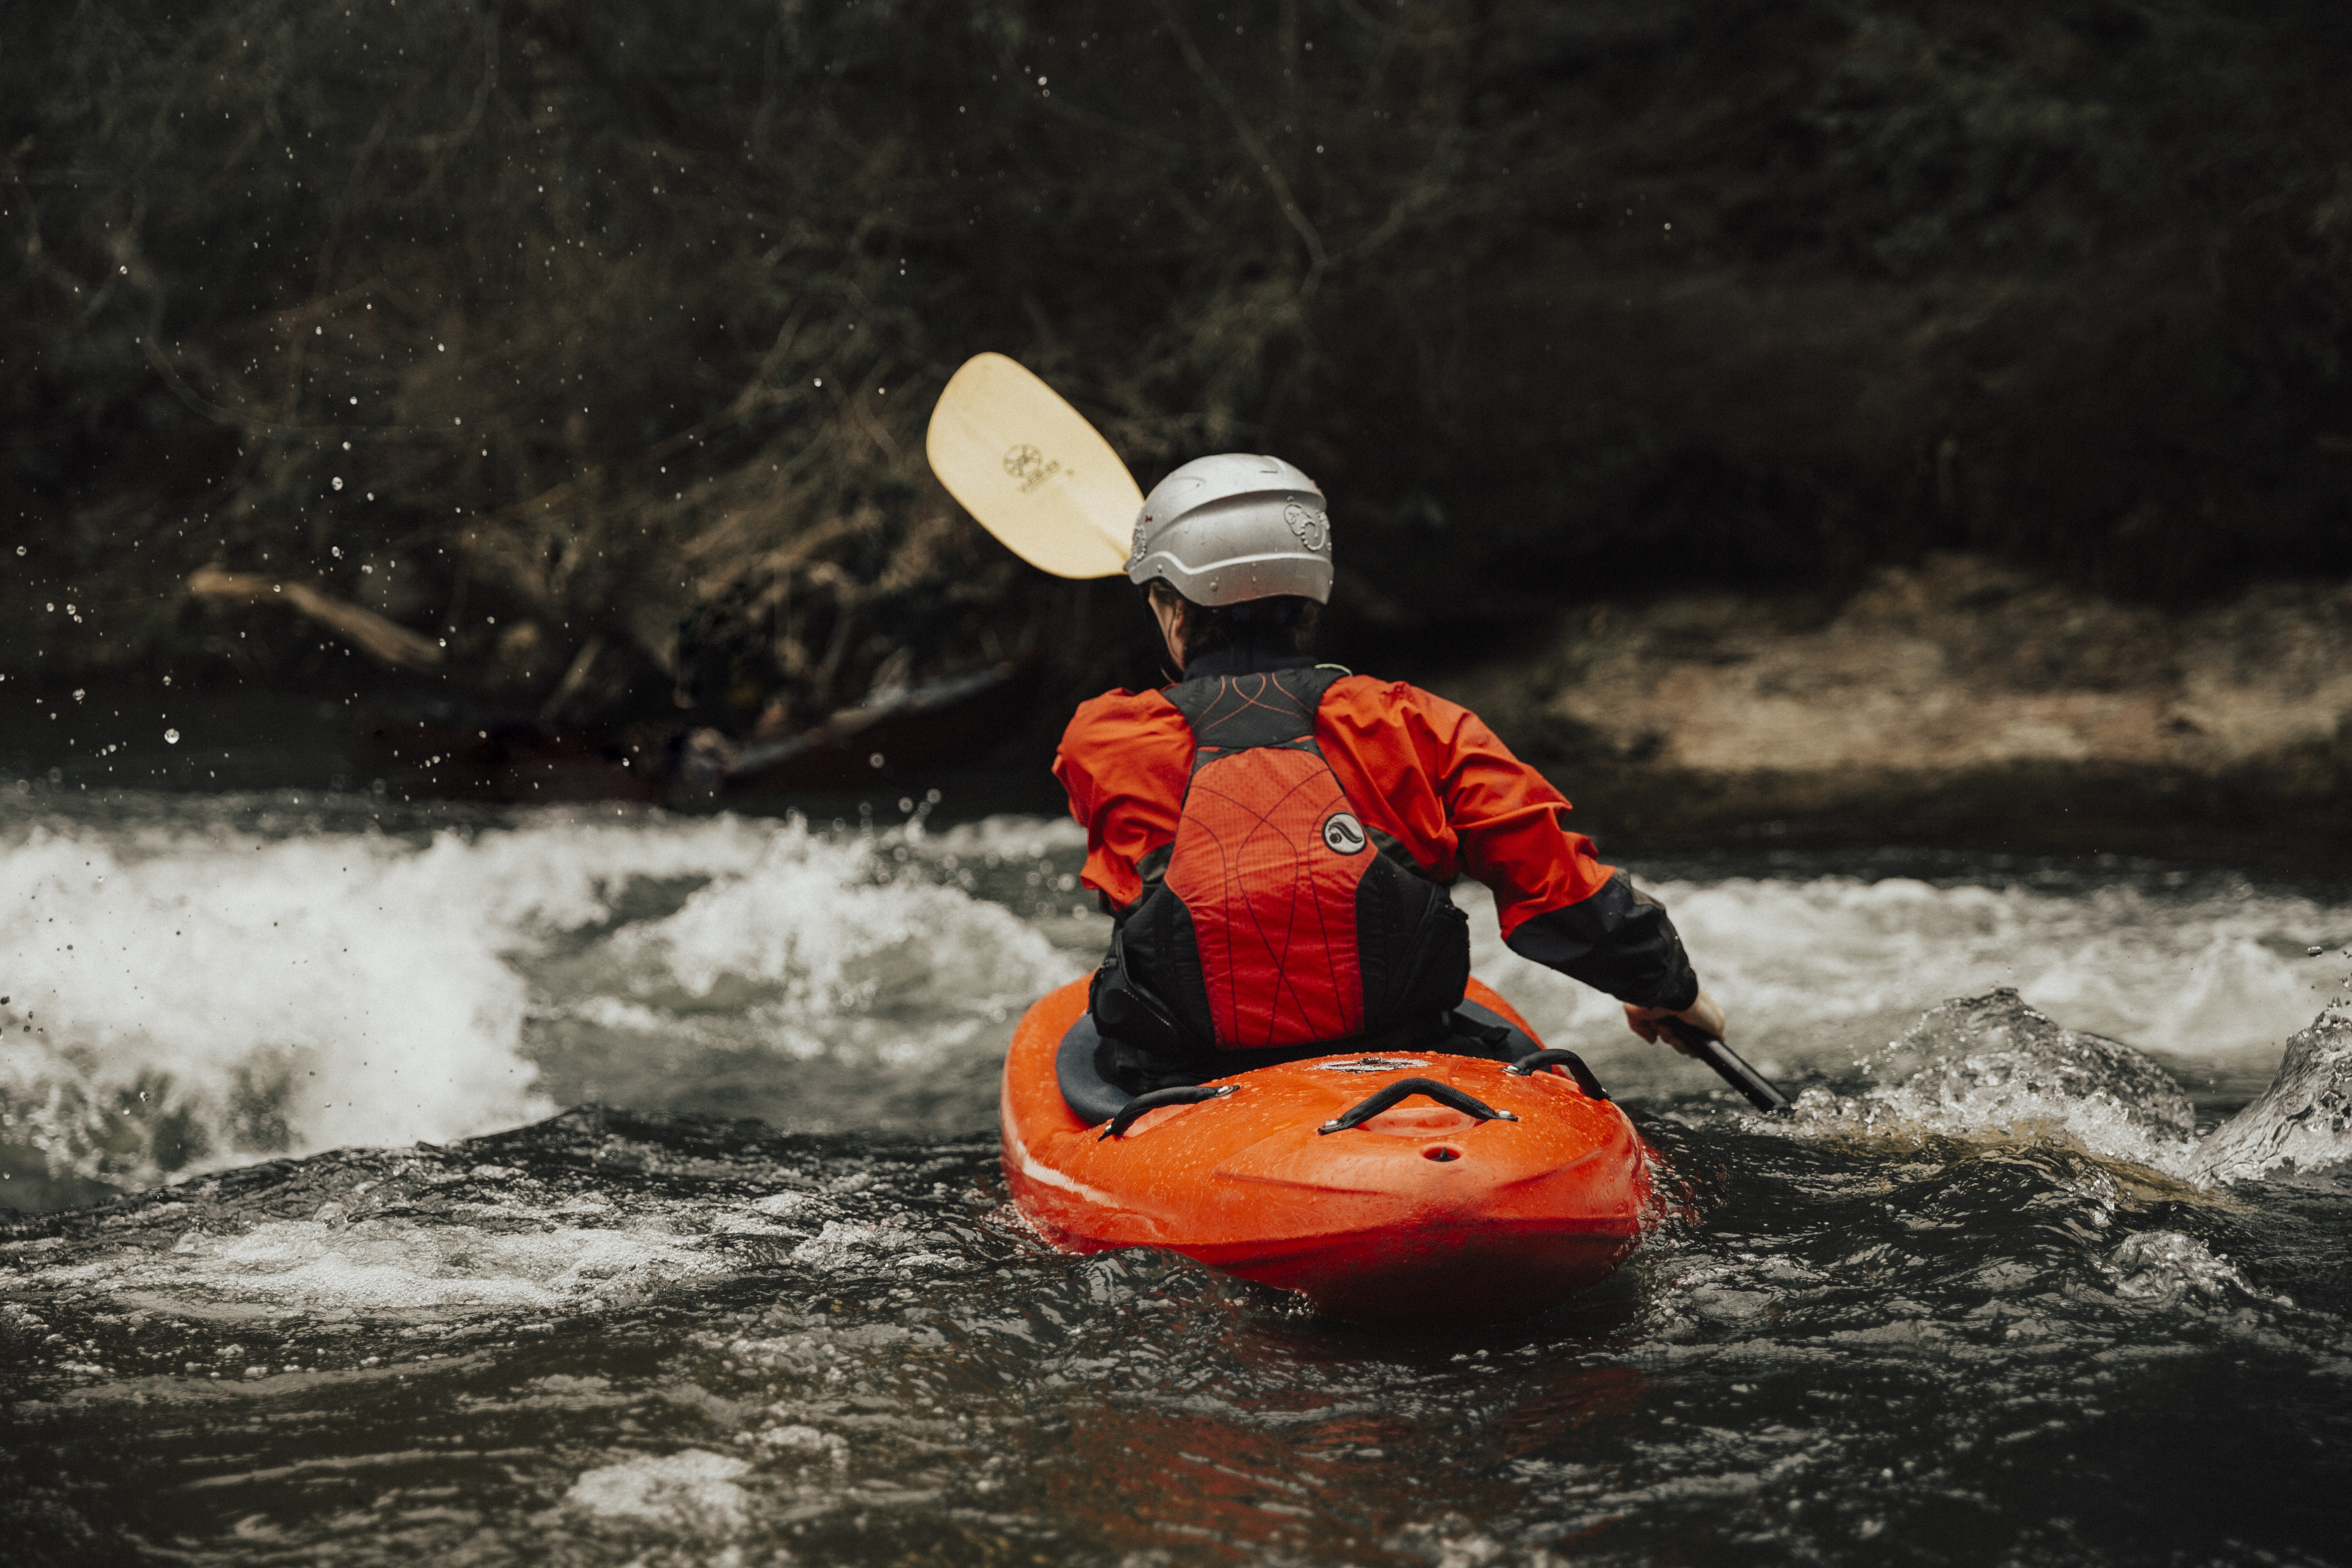 person water rafting on body of water